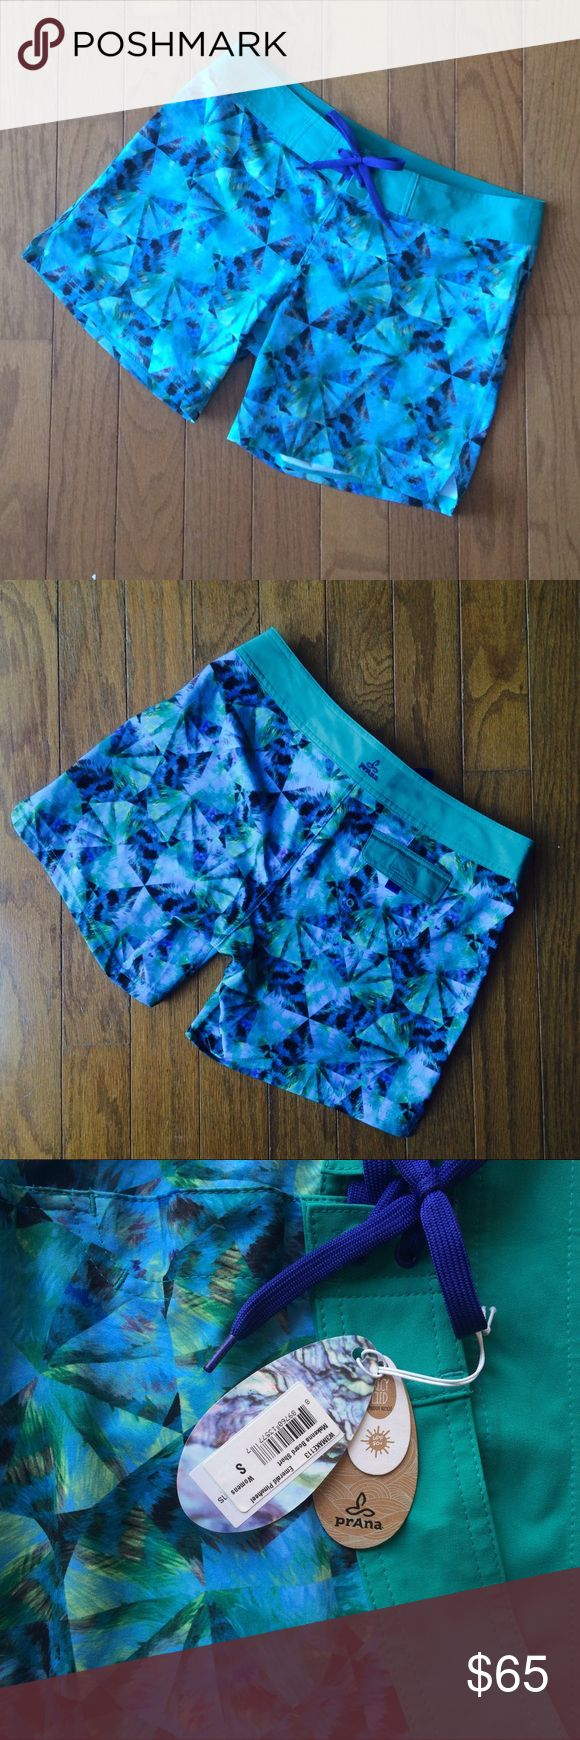 """Prana Blue """"pinwheel"""" Board Shorts -  Small BNWT Honestly the best print I've ever seen for board shorts!! These quick-dry Prana shorts feature SPF protection, Velcro/tie closure, and a rear pocket with velcro. Super lightweight, not like stiff-feeling water shorts. Pair with a crop top, swimsuit and sandals to enjoy the long summer days! Prana Shorts"""